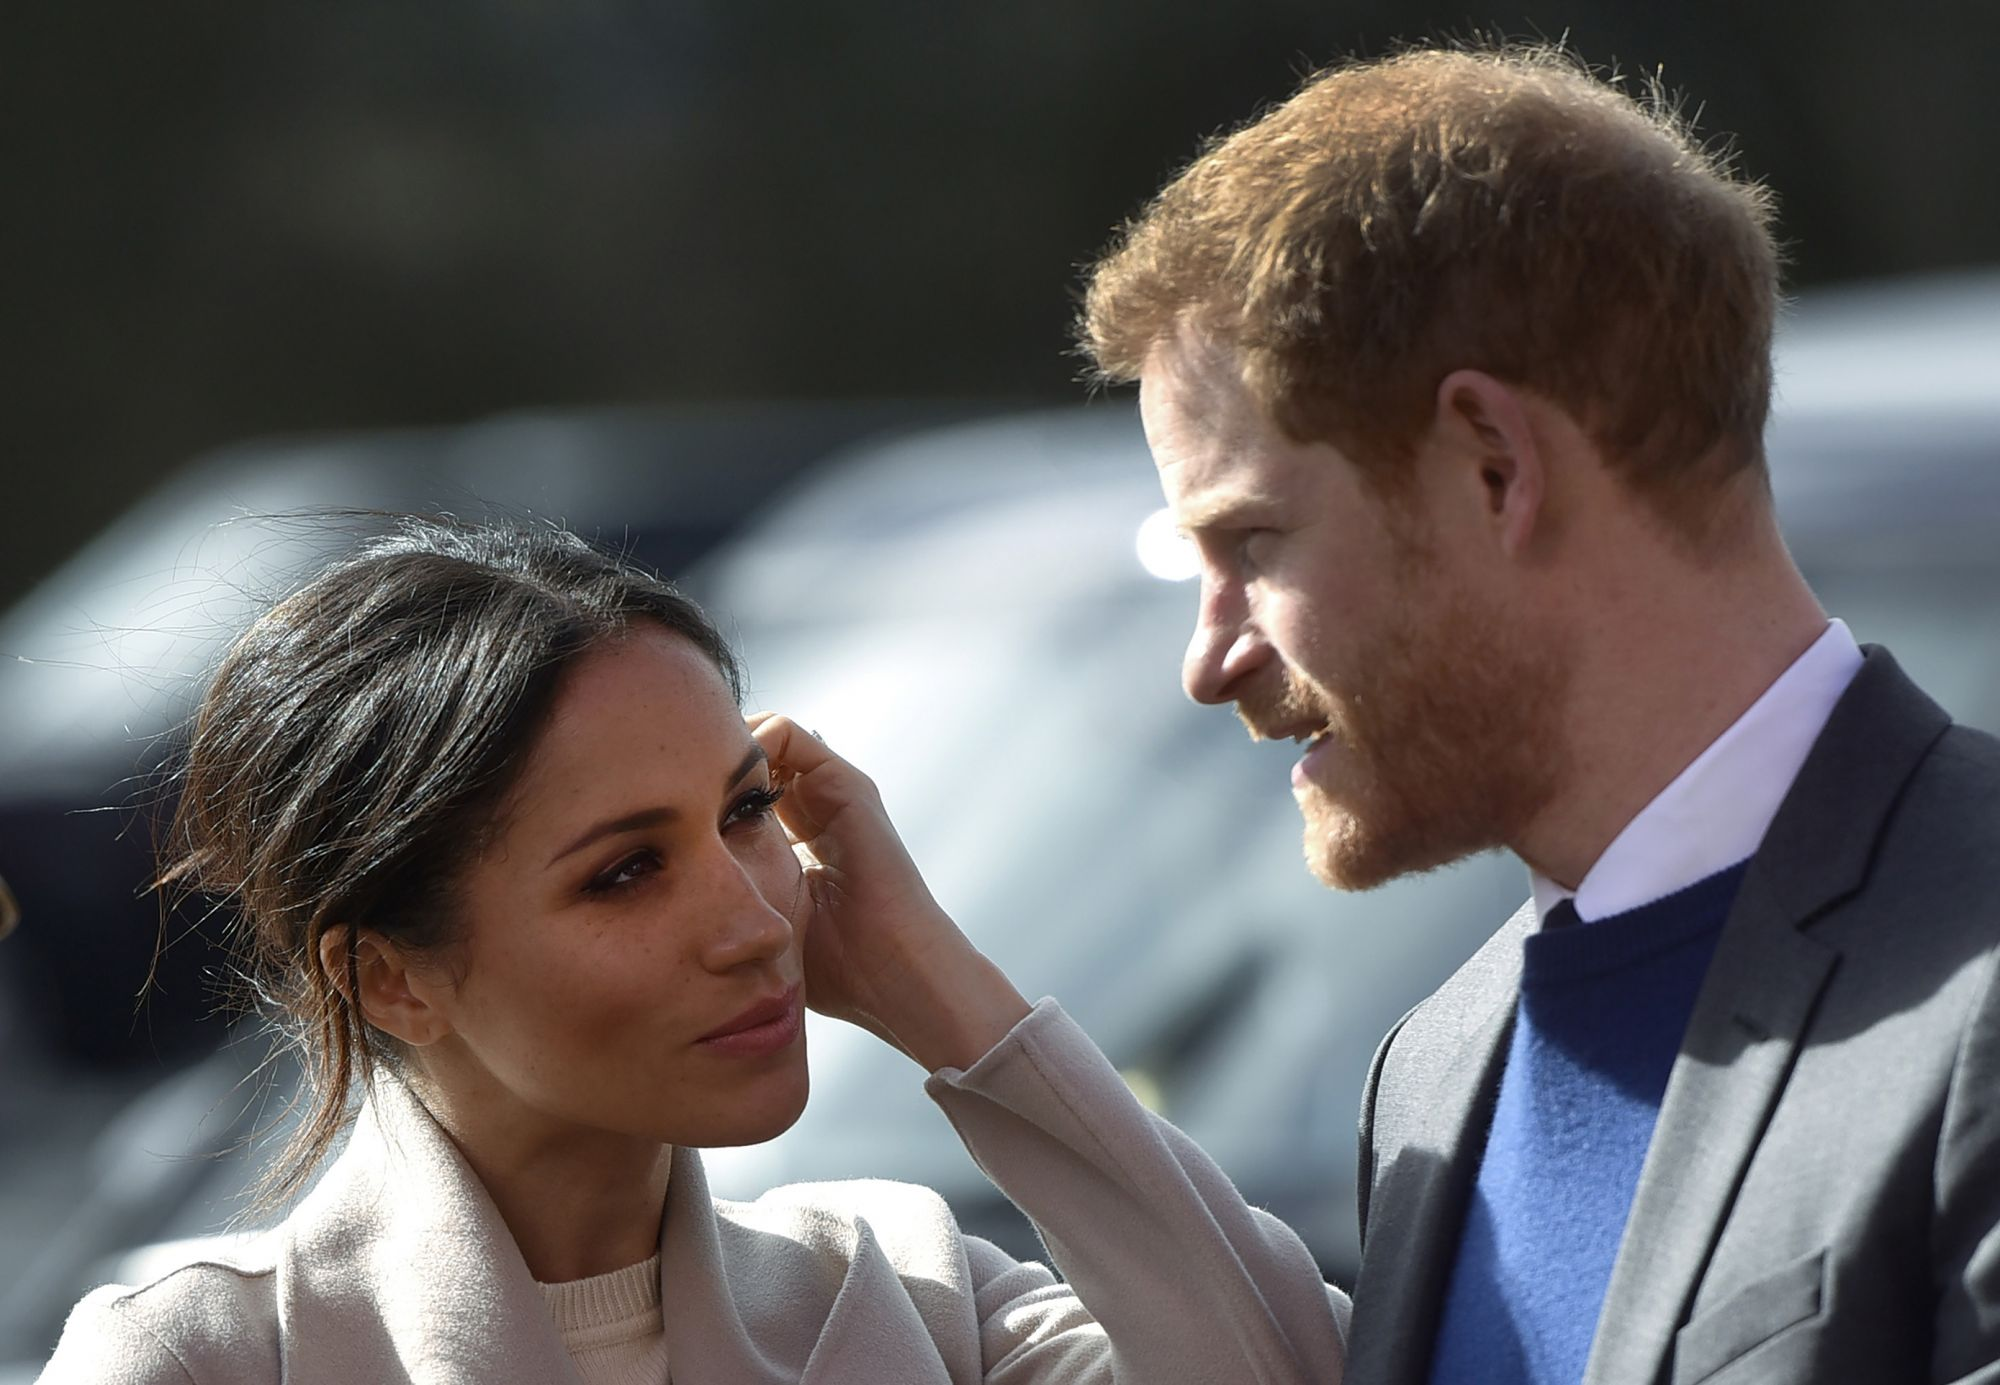 10,000 People Expected To Turn Up For Prince Harry's Wedding